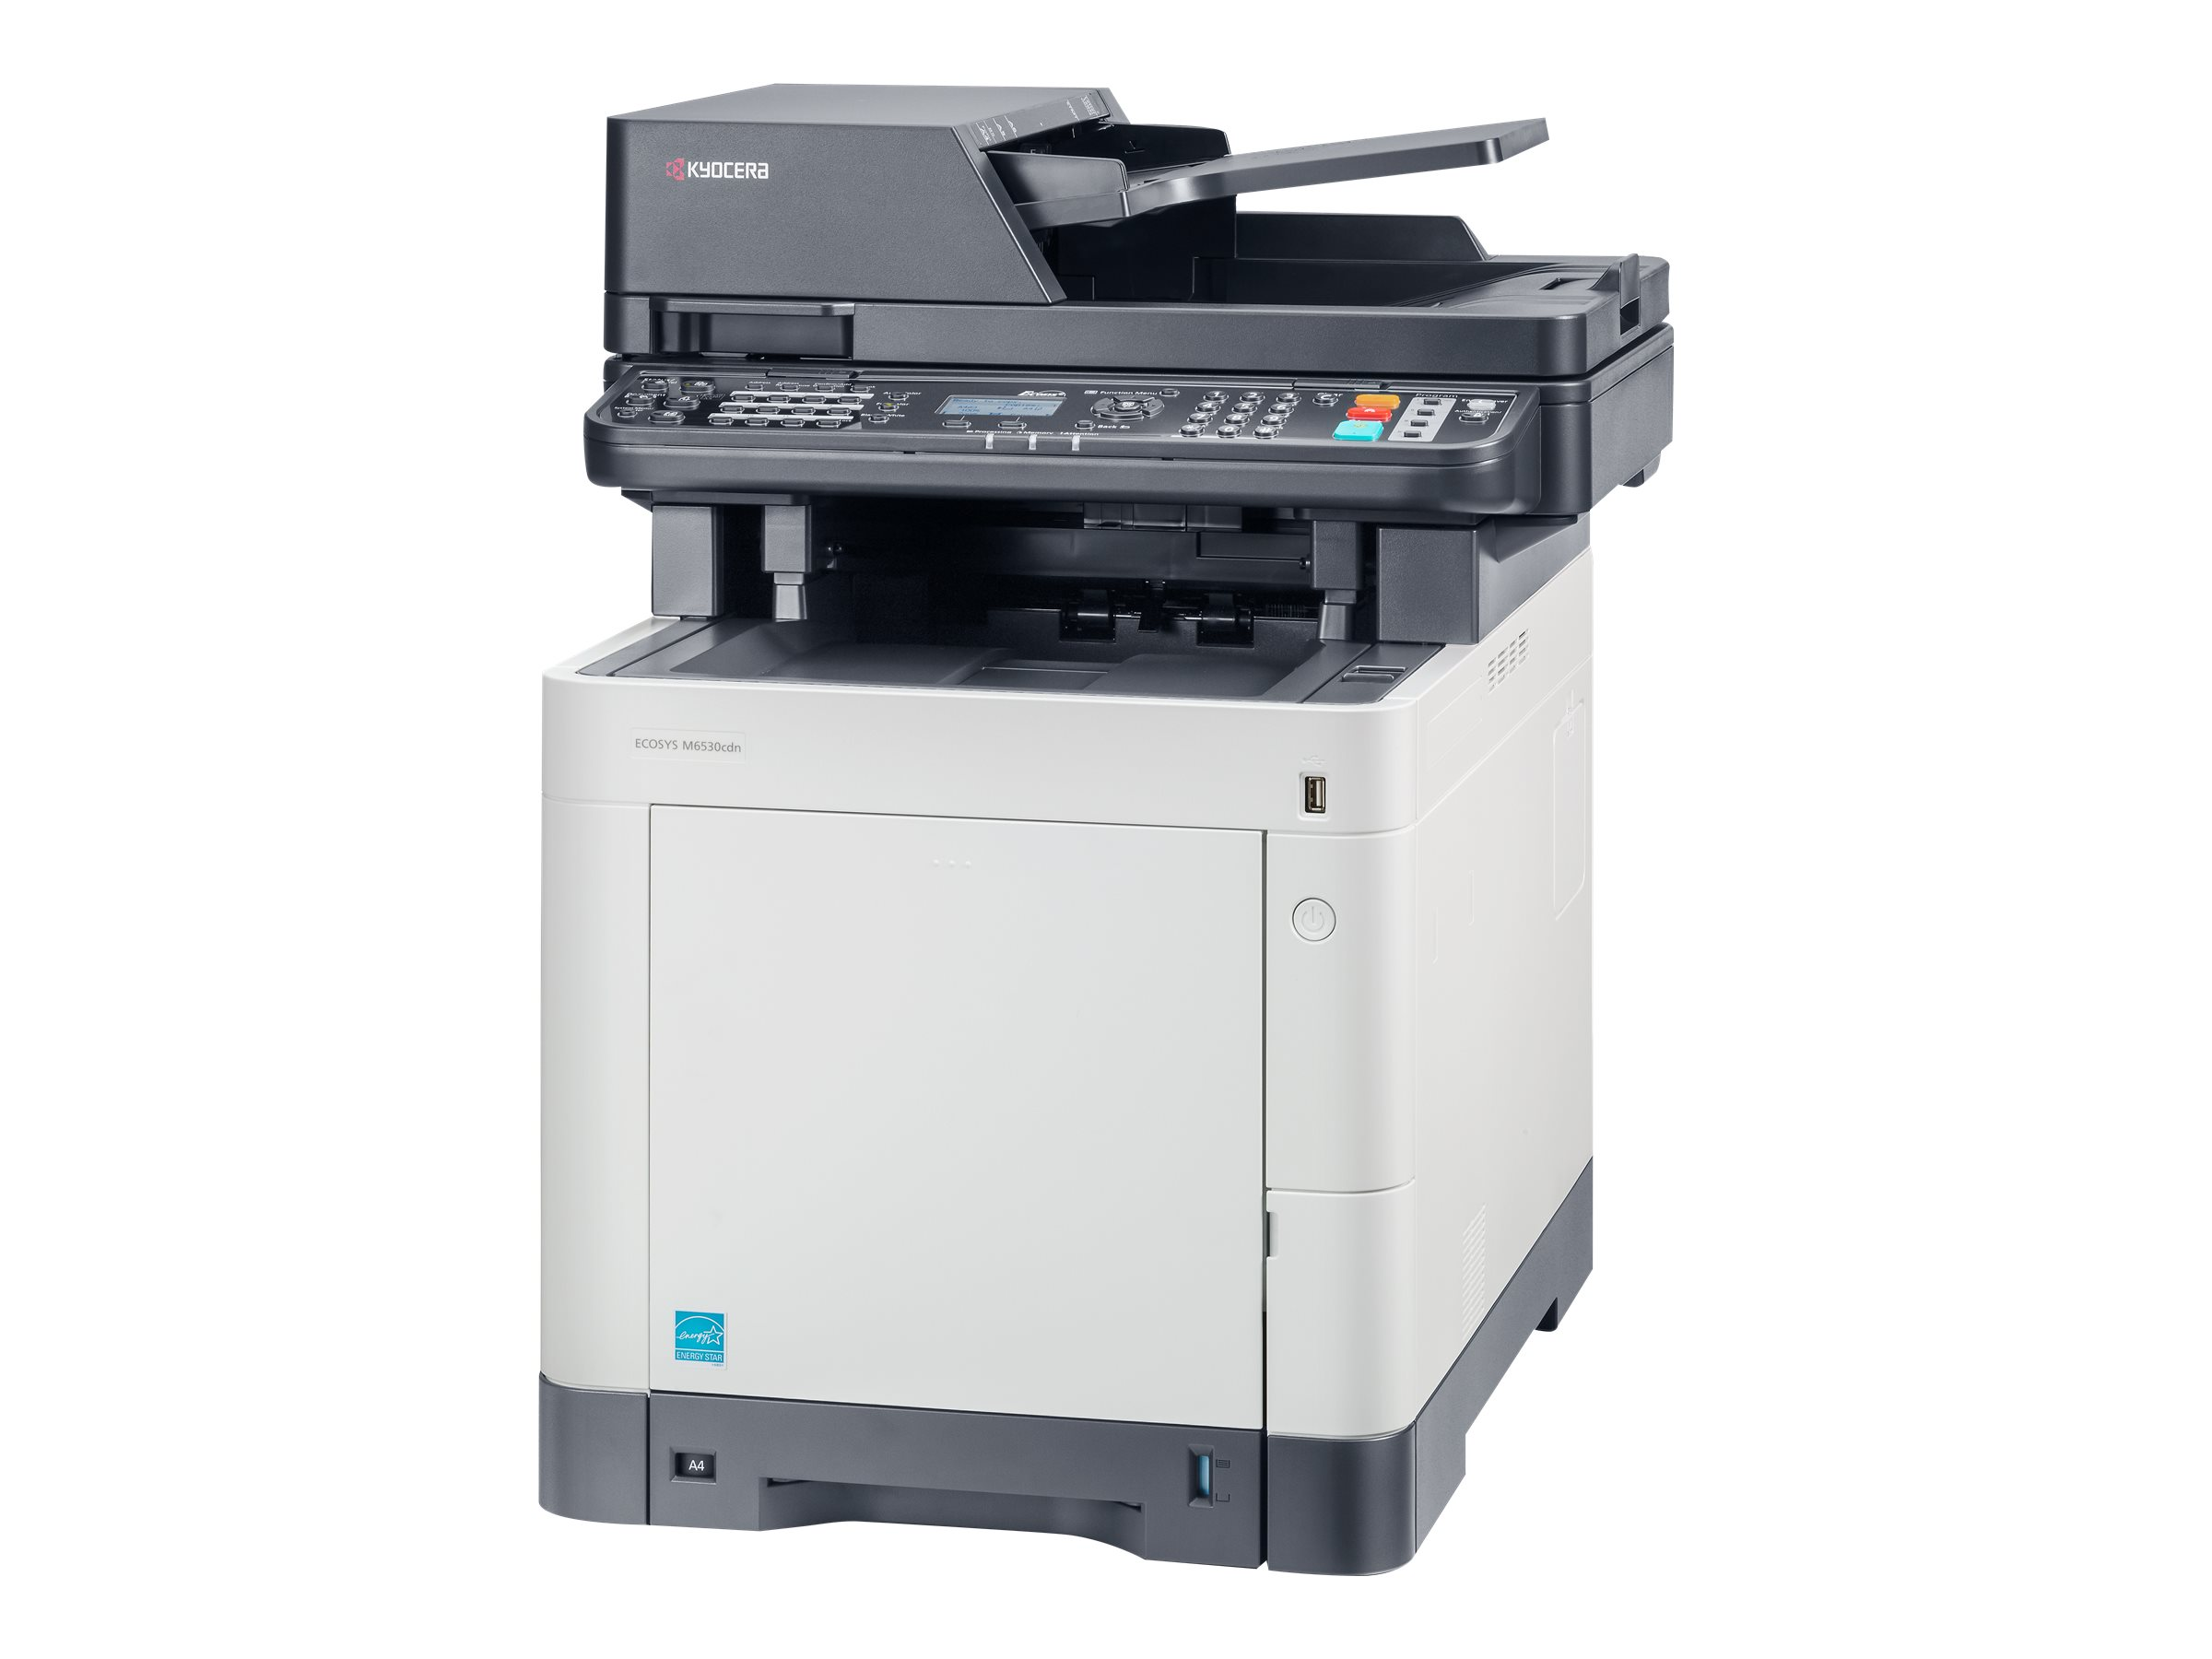 Kyocera ECOSYS M6530cdn - Multifunktionsdrucker - Farbe - Laser - Legal (216 x 356 mm)/A4 (210 x 297 mm) (Original) - A4/Legal (Medien)